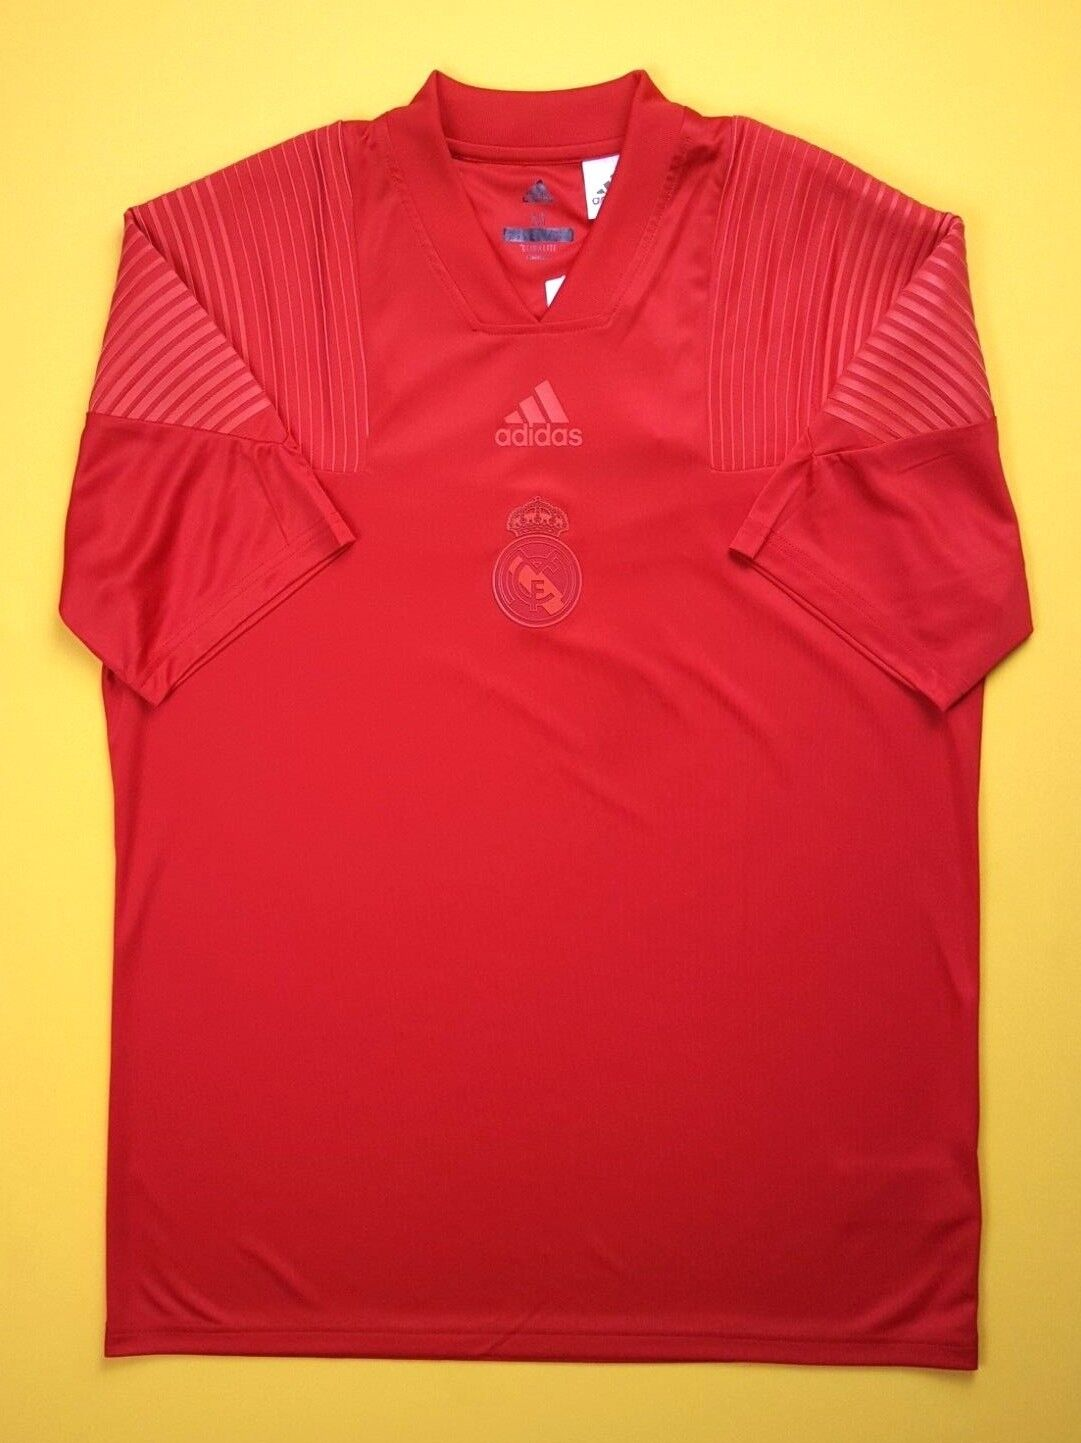 5 5 Real Madrid training jersey MEDIUM shirt soccer football Adidas ig93